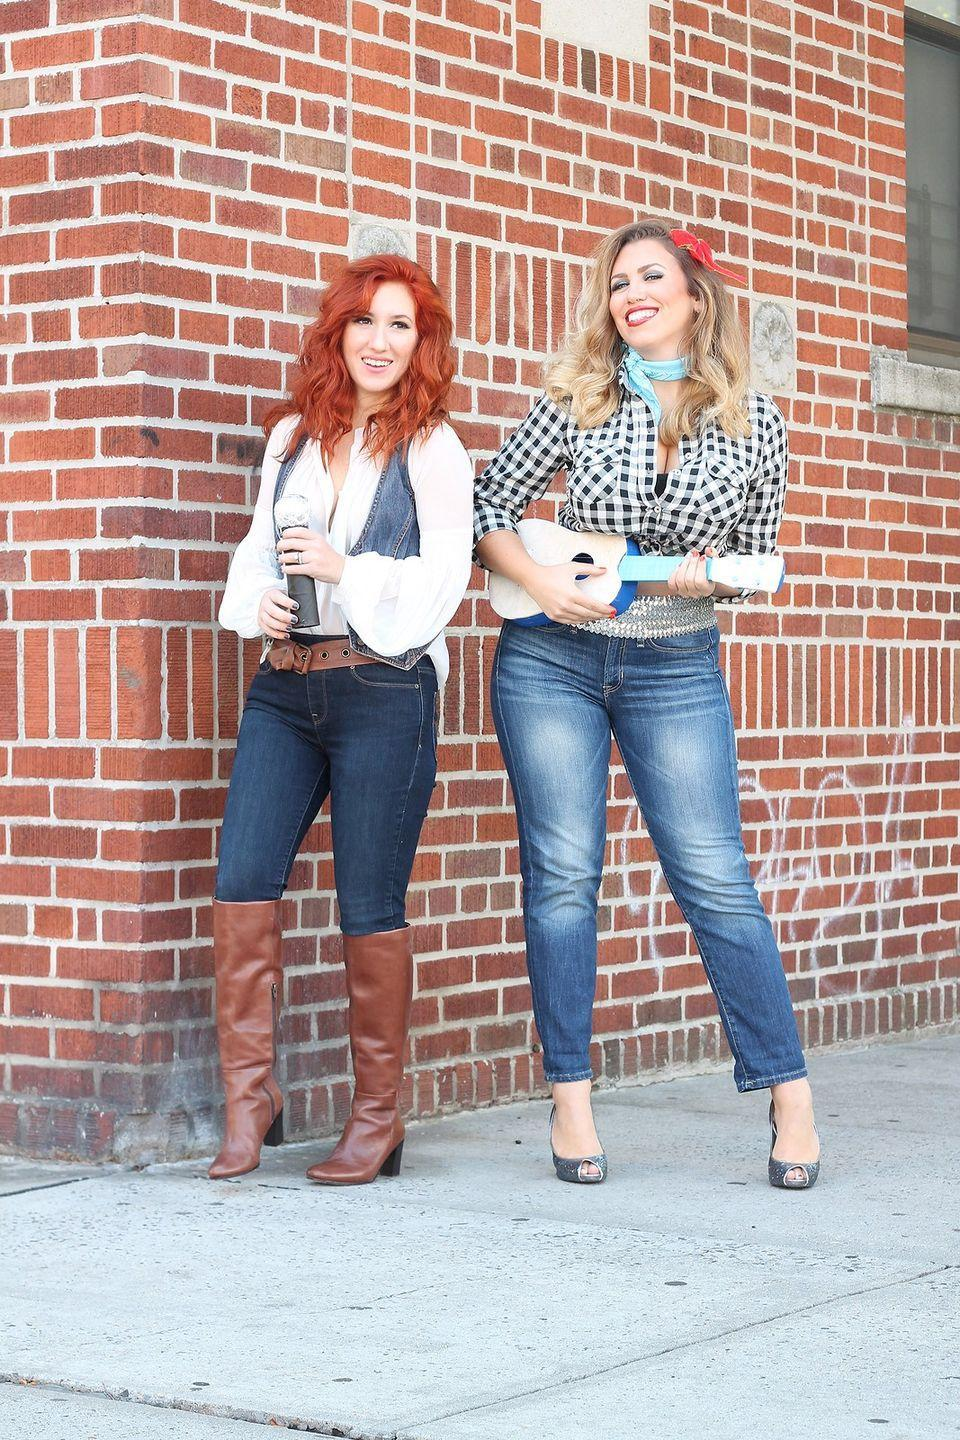 """<p>If only these famed country crooners were actually sisters in real life! Wow trick-or-treaters with a quick duet from this pair's collection of greatest hits. </p><p><strong>Get the tutorial at <a href=""""http://livingaftermidnite.com/2017/10/best-friend-halloween-costumes.html"""" rel=""""nofollow noopener"""" target=""""_blank"""" data-ylk=""""slk:Living After Midnite"""" class=""""link rapid-noclick-resp"""">Living After Midnite</a>. </strong></p><p><strong><a class=""""link rapid-noclick-resp"""" href=""""https://www.amazon.com/GUANYY-Womens-Sleeve-Classic-X-Large/dp/B078J3JGLN?tag=syn-yahoo-20&ascsubtag=%5Bartid%7C10050.g.21530121%5Bsrc%7Cyahoo-us"""" rel=""""nofollow noopener"""" target=""""_blank"""" data-ylk=""""slk:SHOP PLAID SHIRTS"""">SHOP PLAID SHIRTS</a><br></strong></p>"""